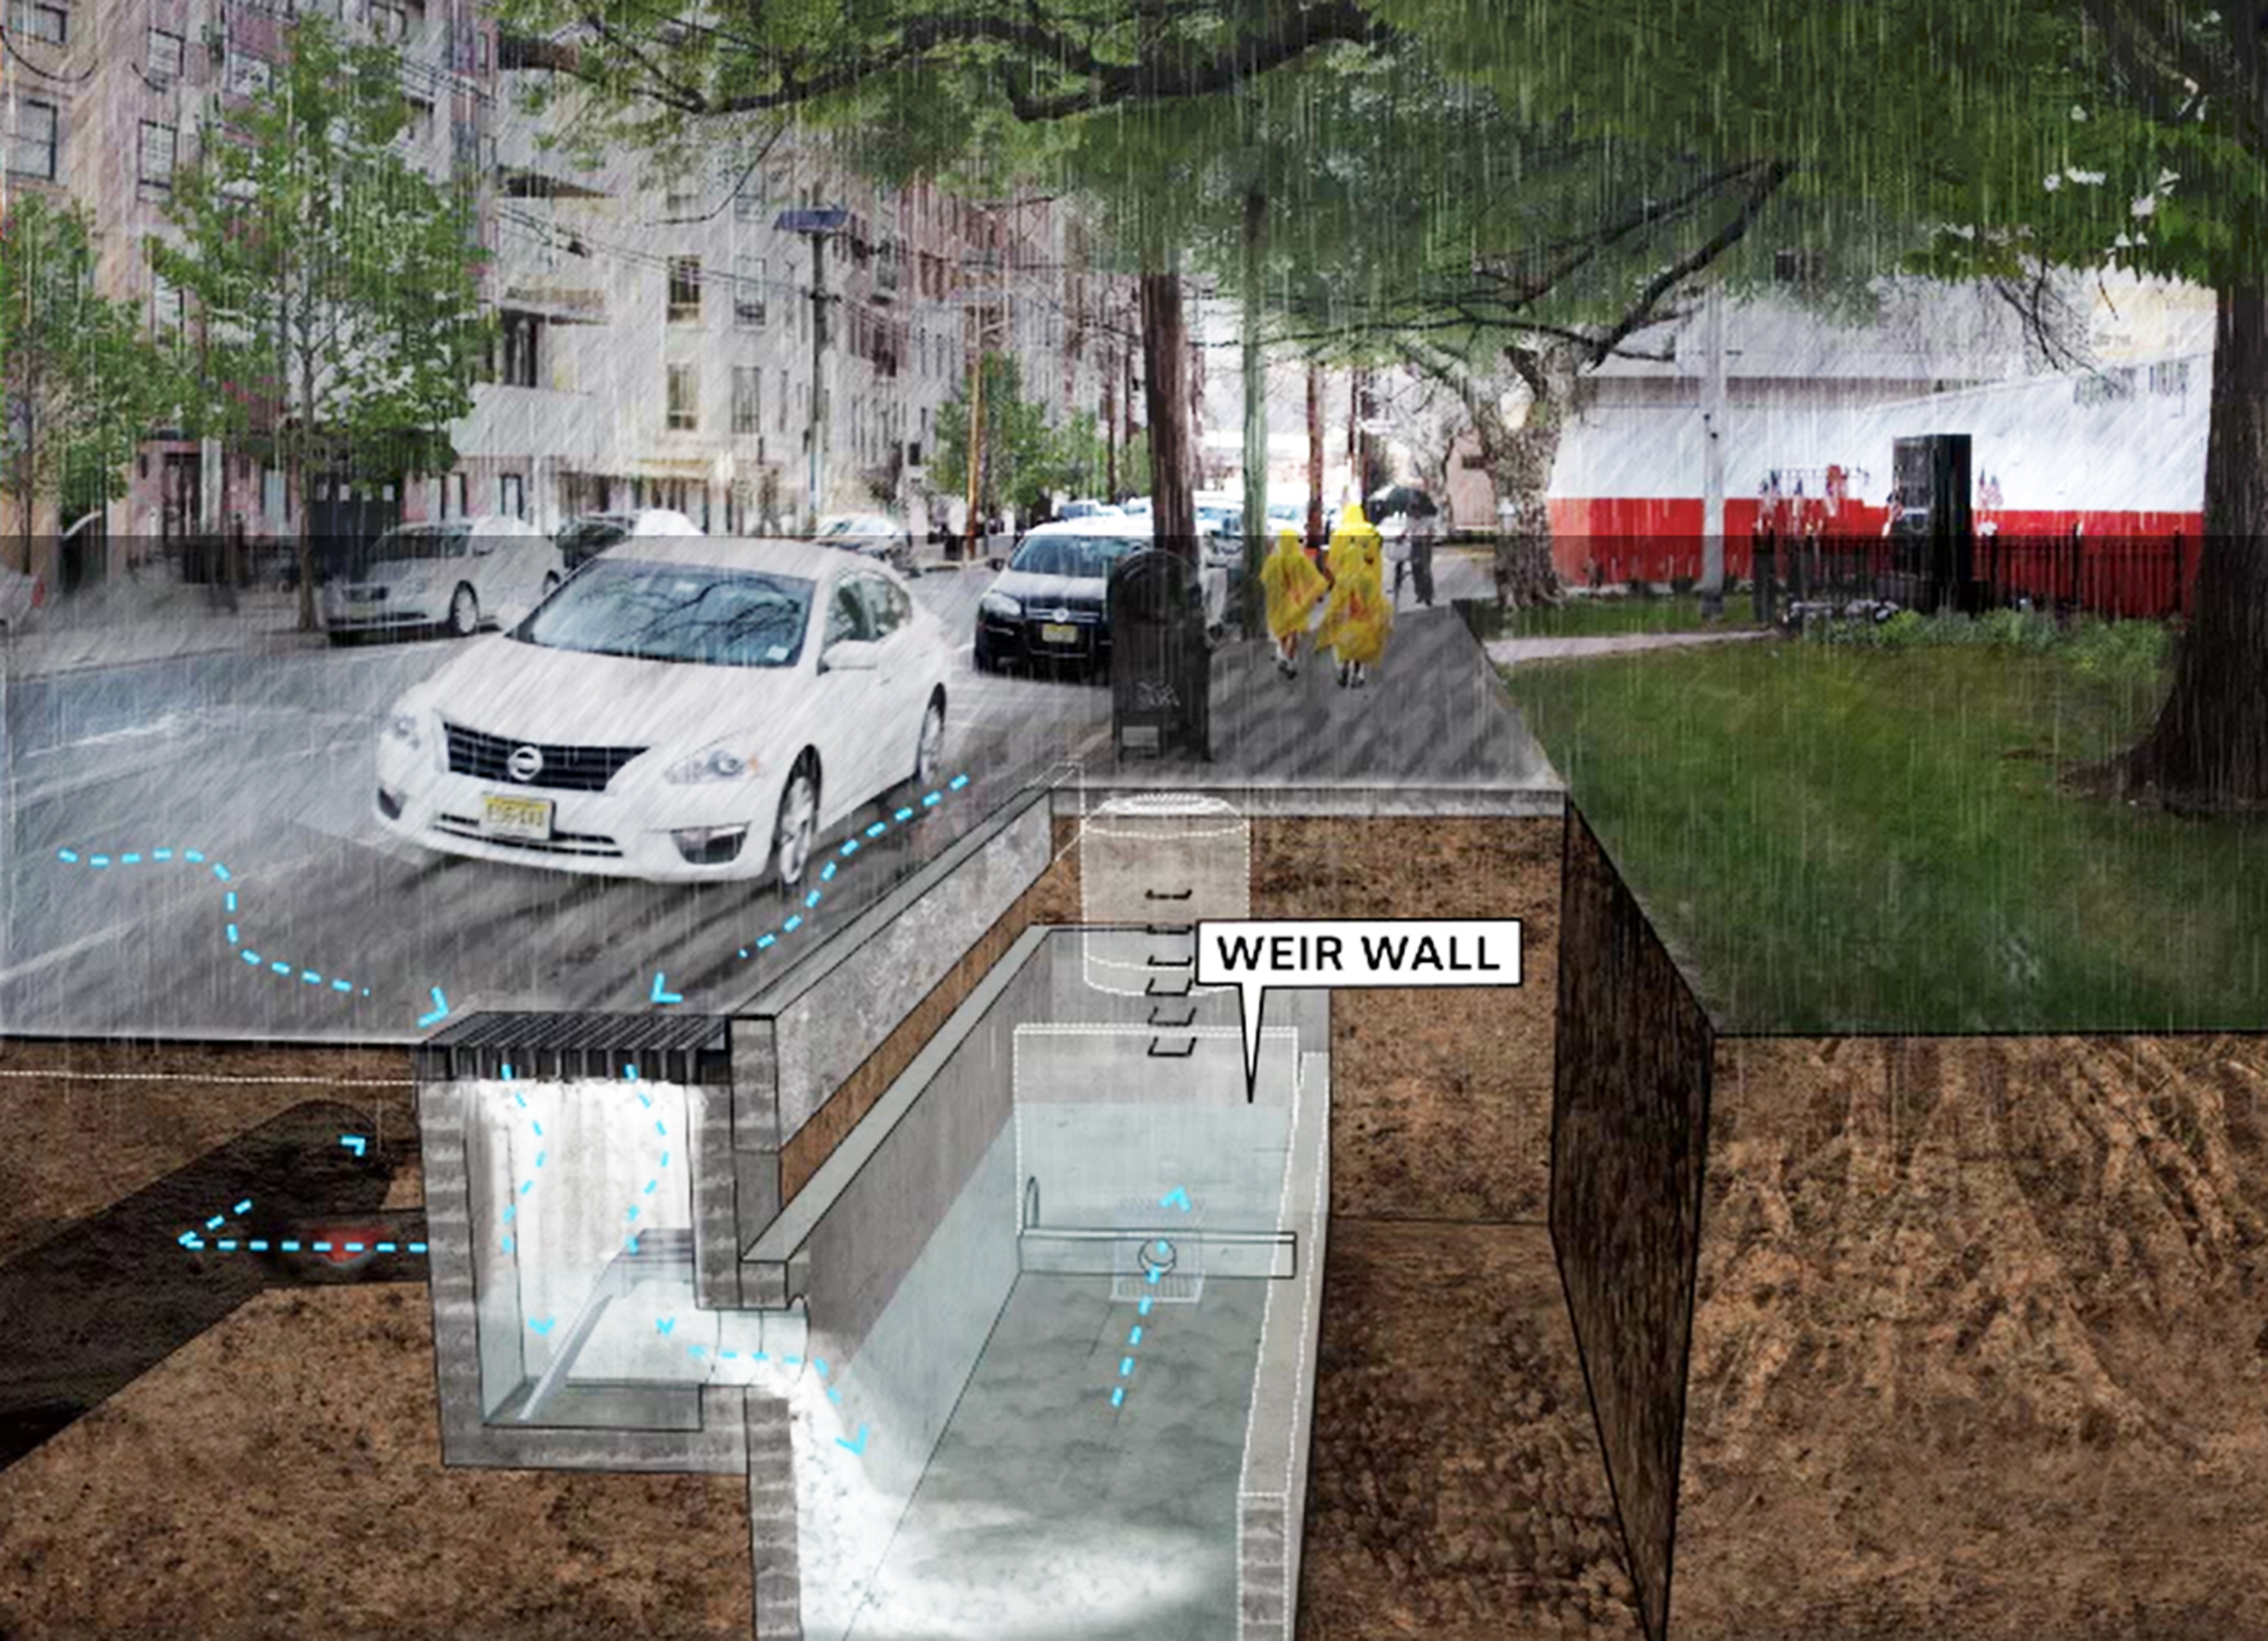 Green and gray infrastructure solution integrated within public right-of-way to reduce flooding from rainfall events